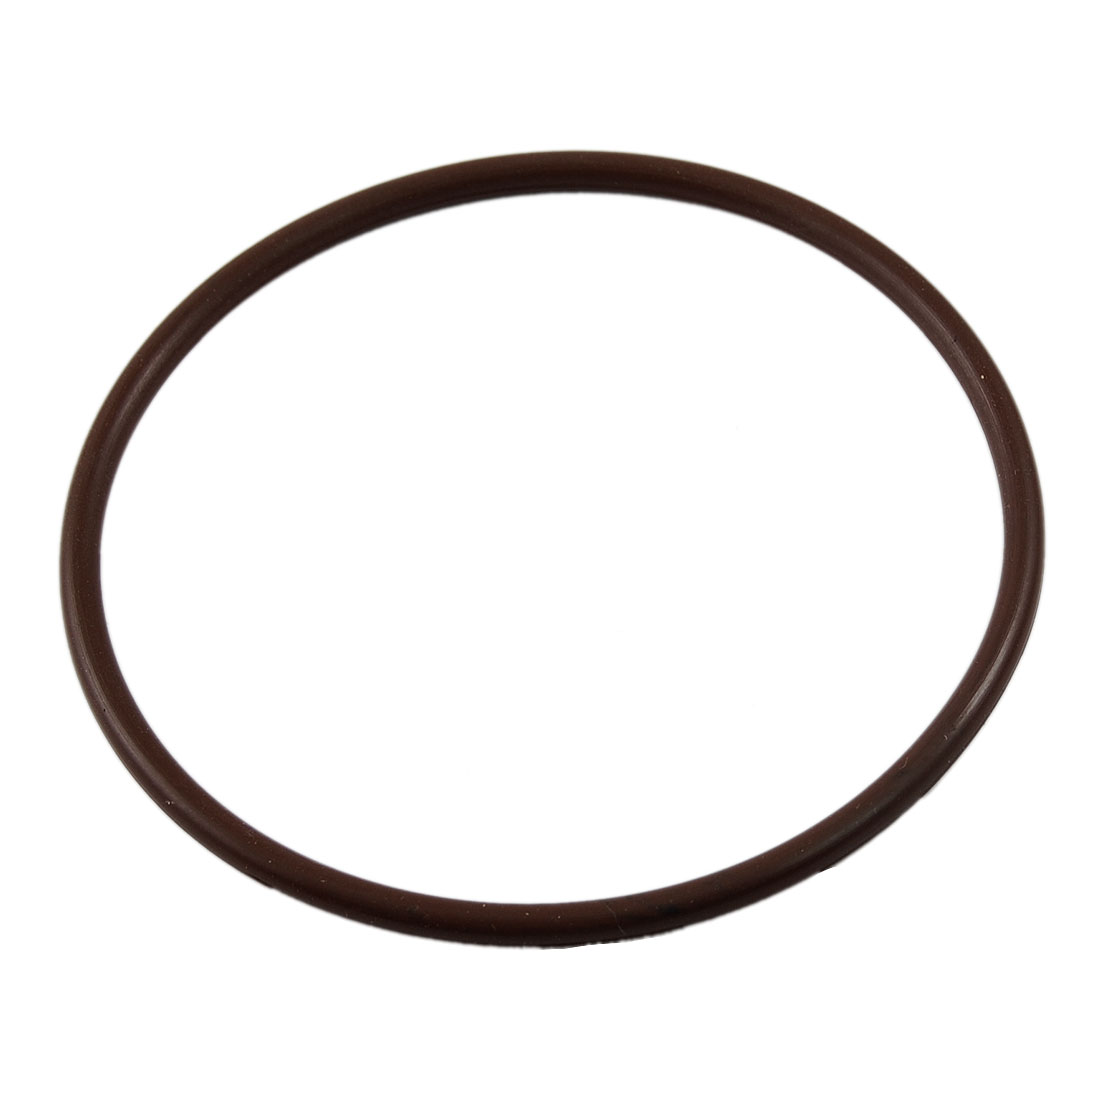 80mm x 3.5mm Mechanical Fluorine Rubber O Ring Seal Gasket Washer